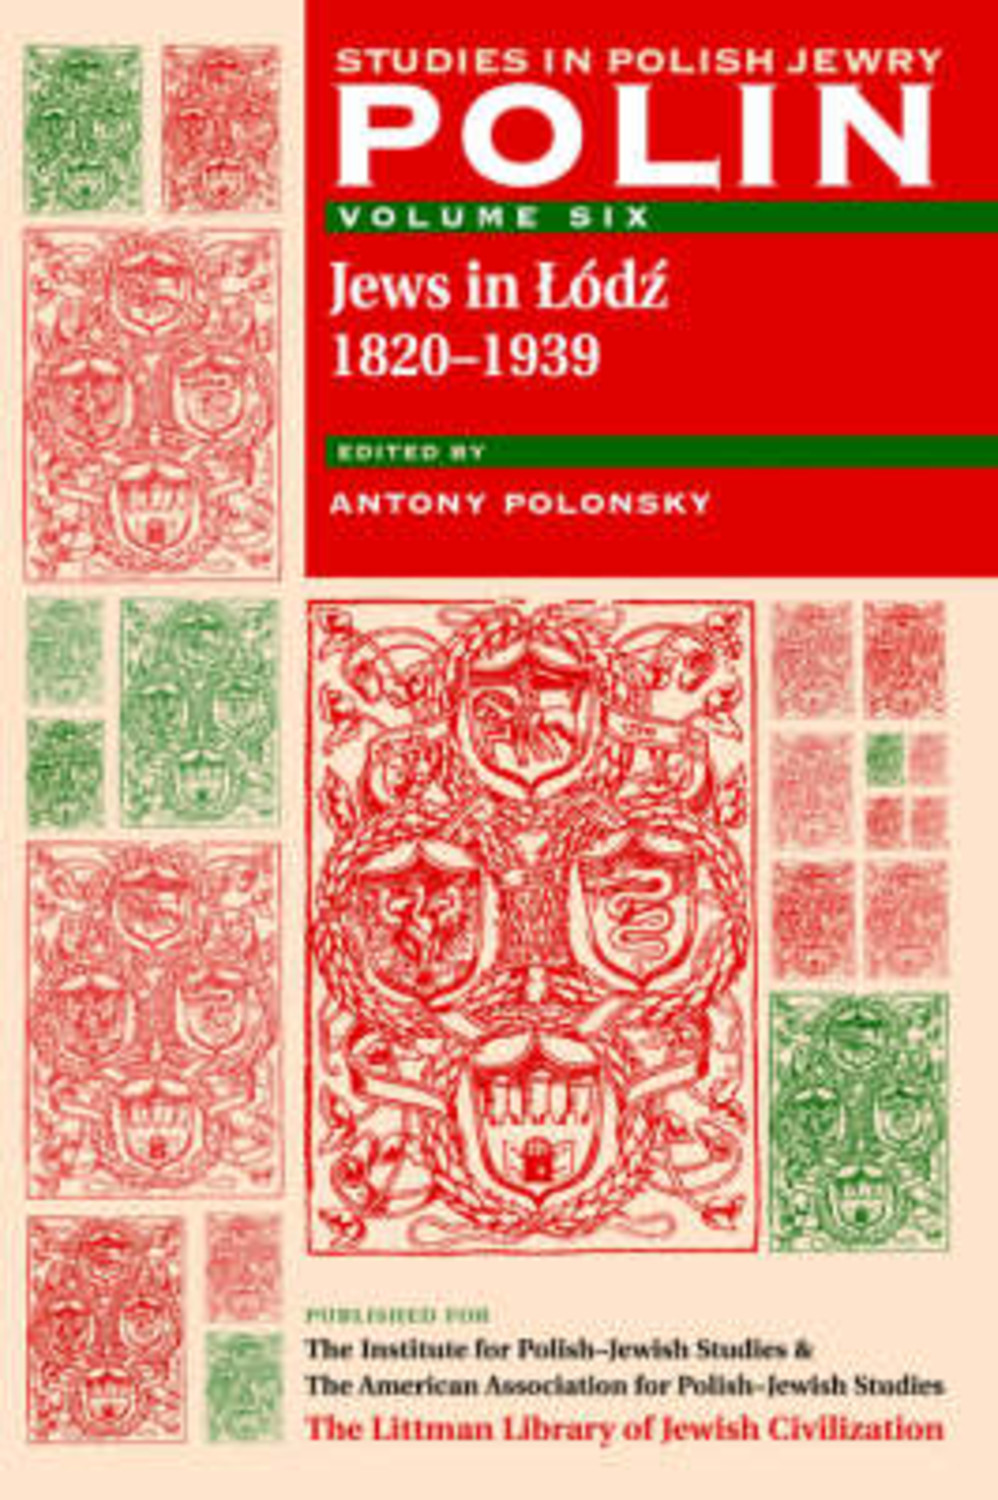 Polin: Studies in Polish Jewry Volume 6